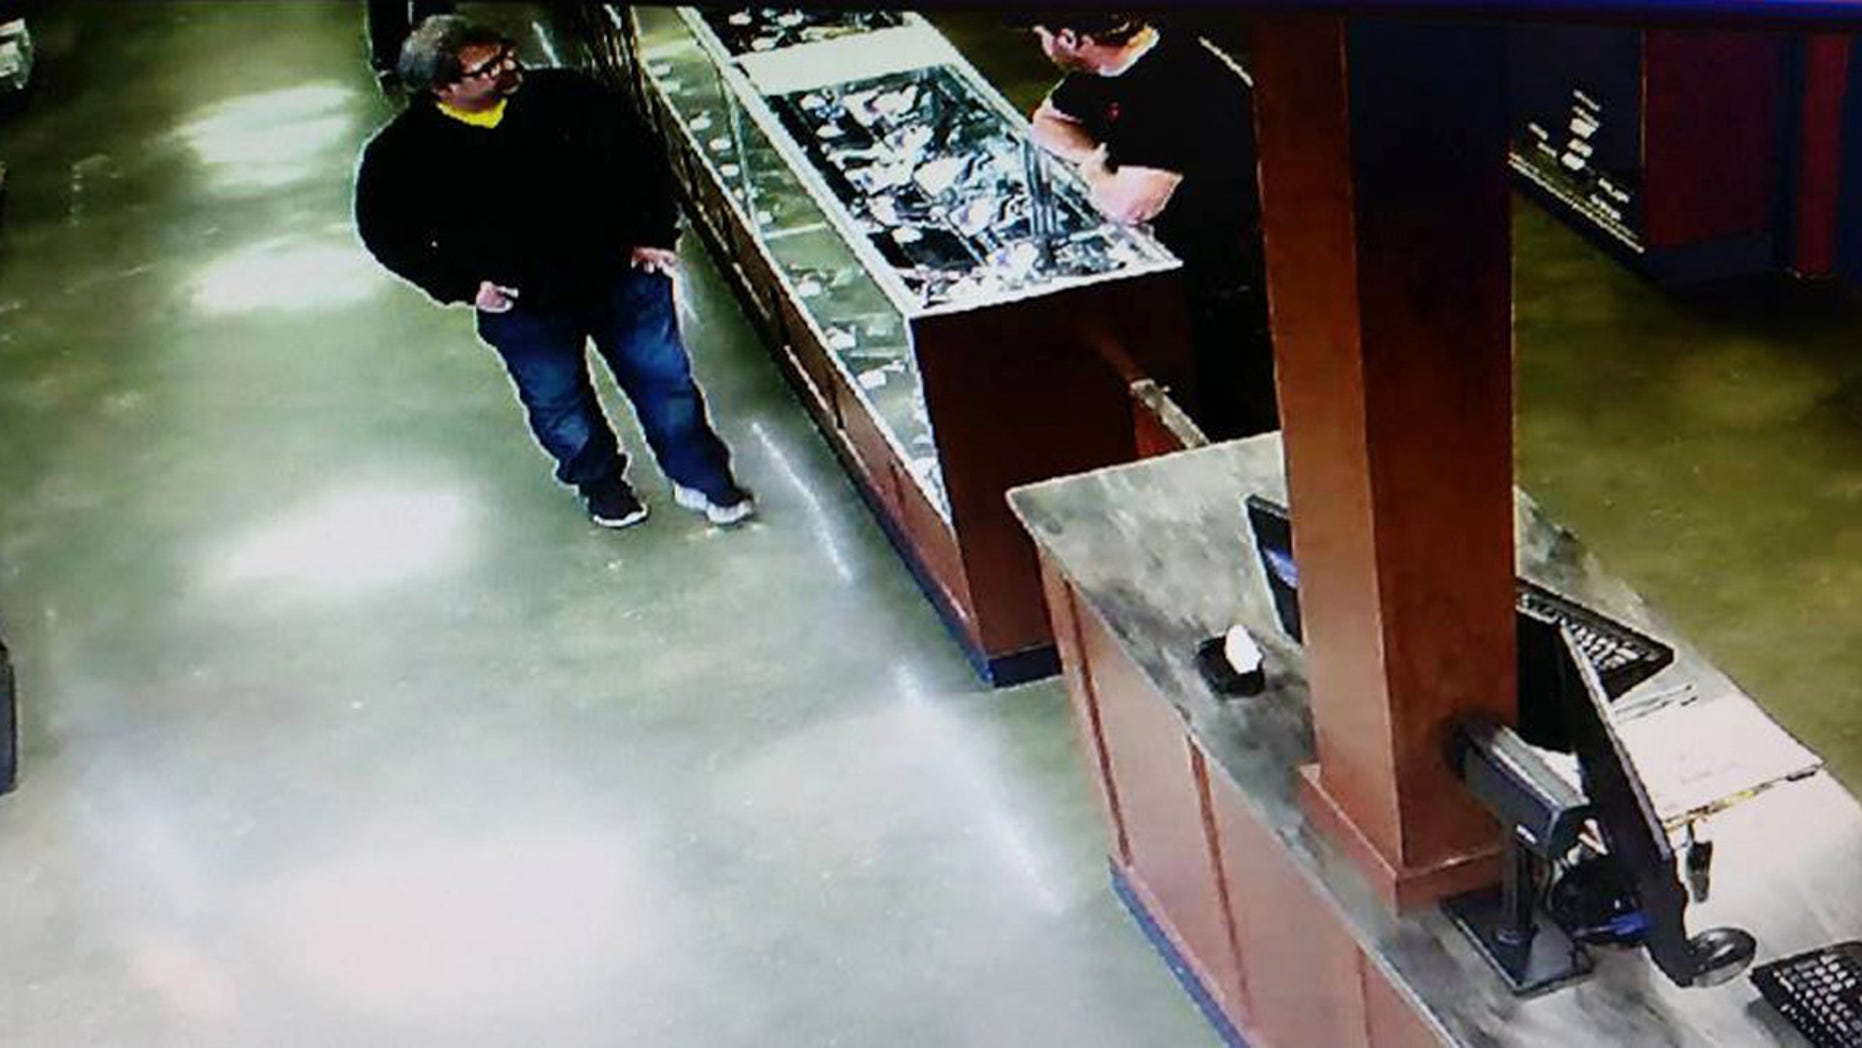 Feb. 20, 2016: In this photo provided by Southwick's gun store, Jason Dalton, left, appears in the store in Plainwell, Mich., hours before he went on a shooting rampage. (Southwick's Gun Store via AP)